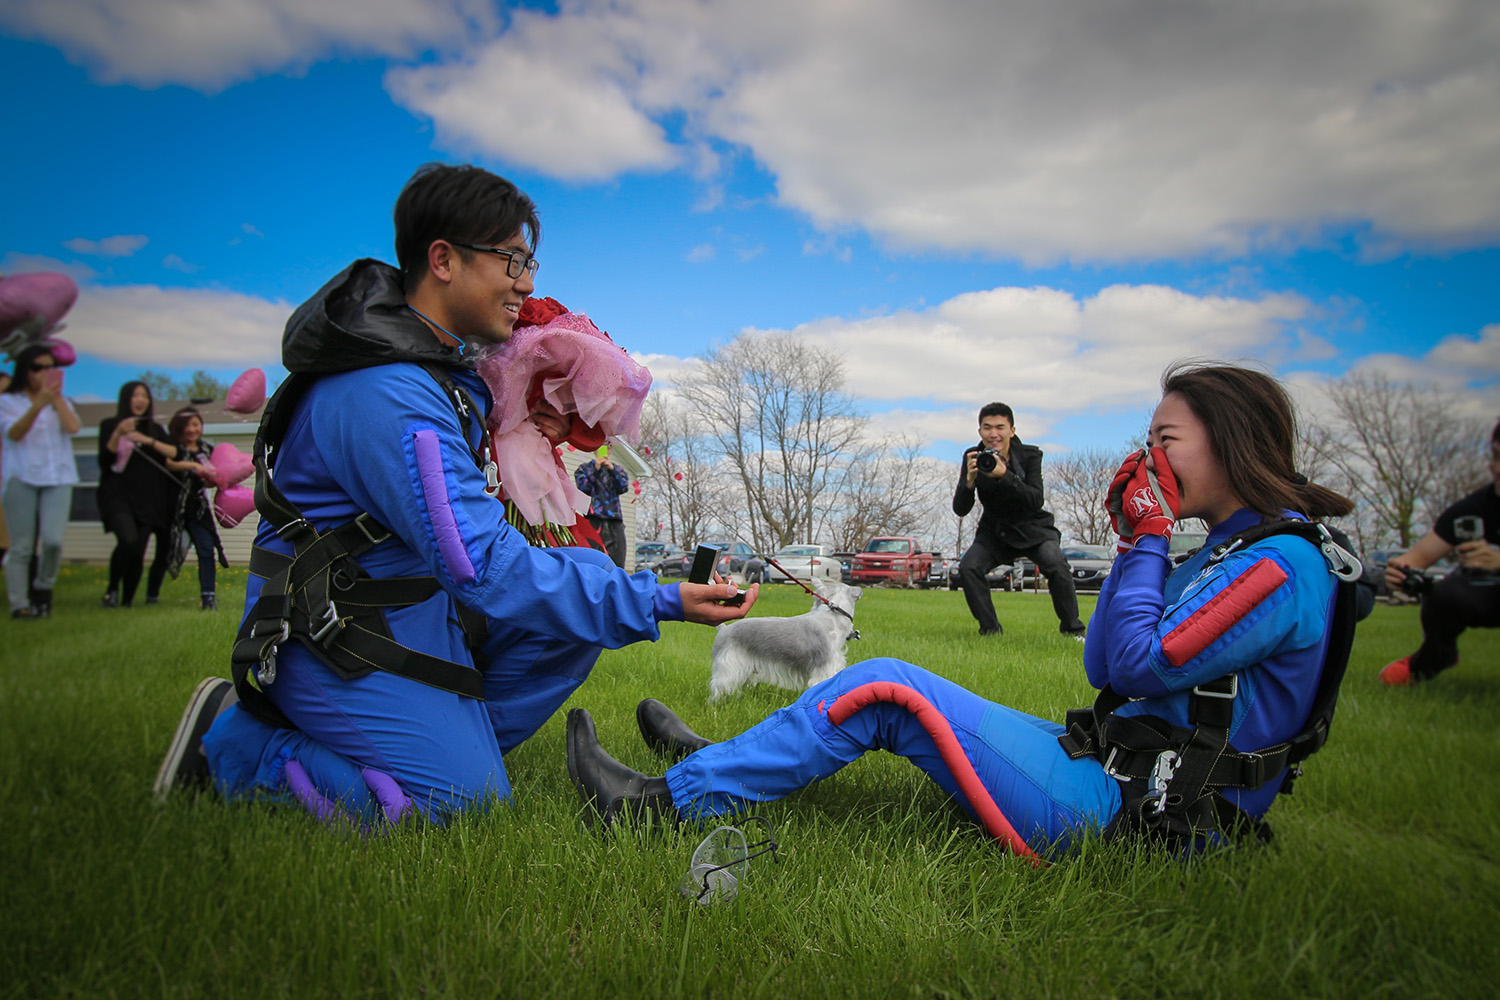 Skydiving & Proposals